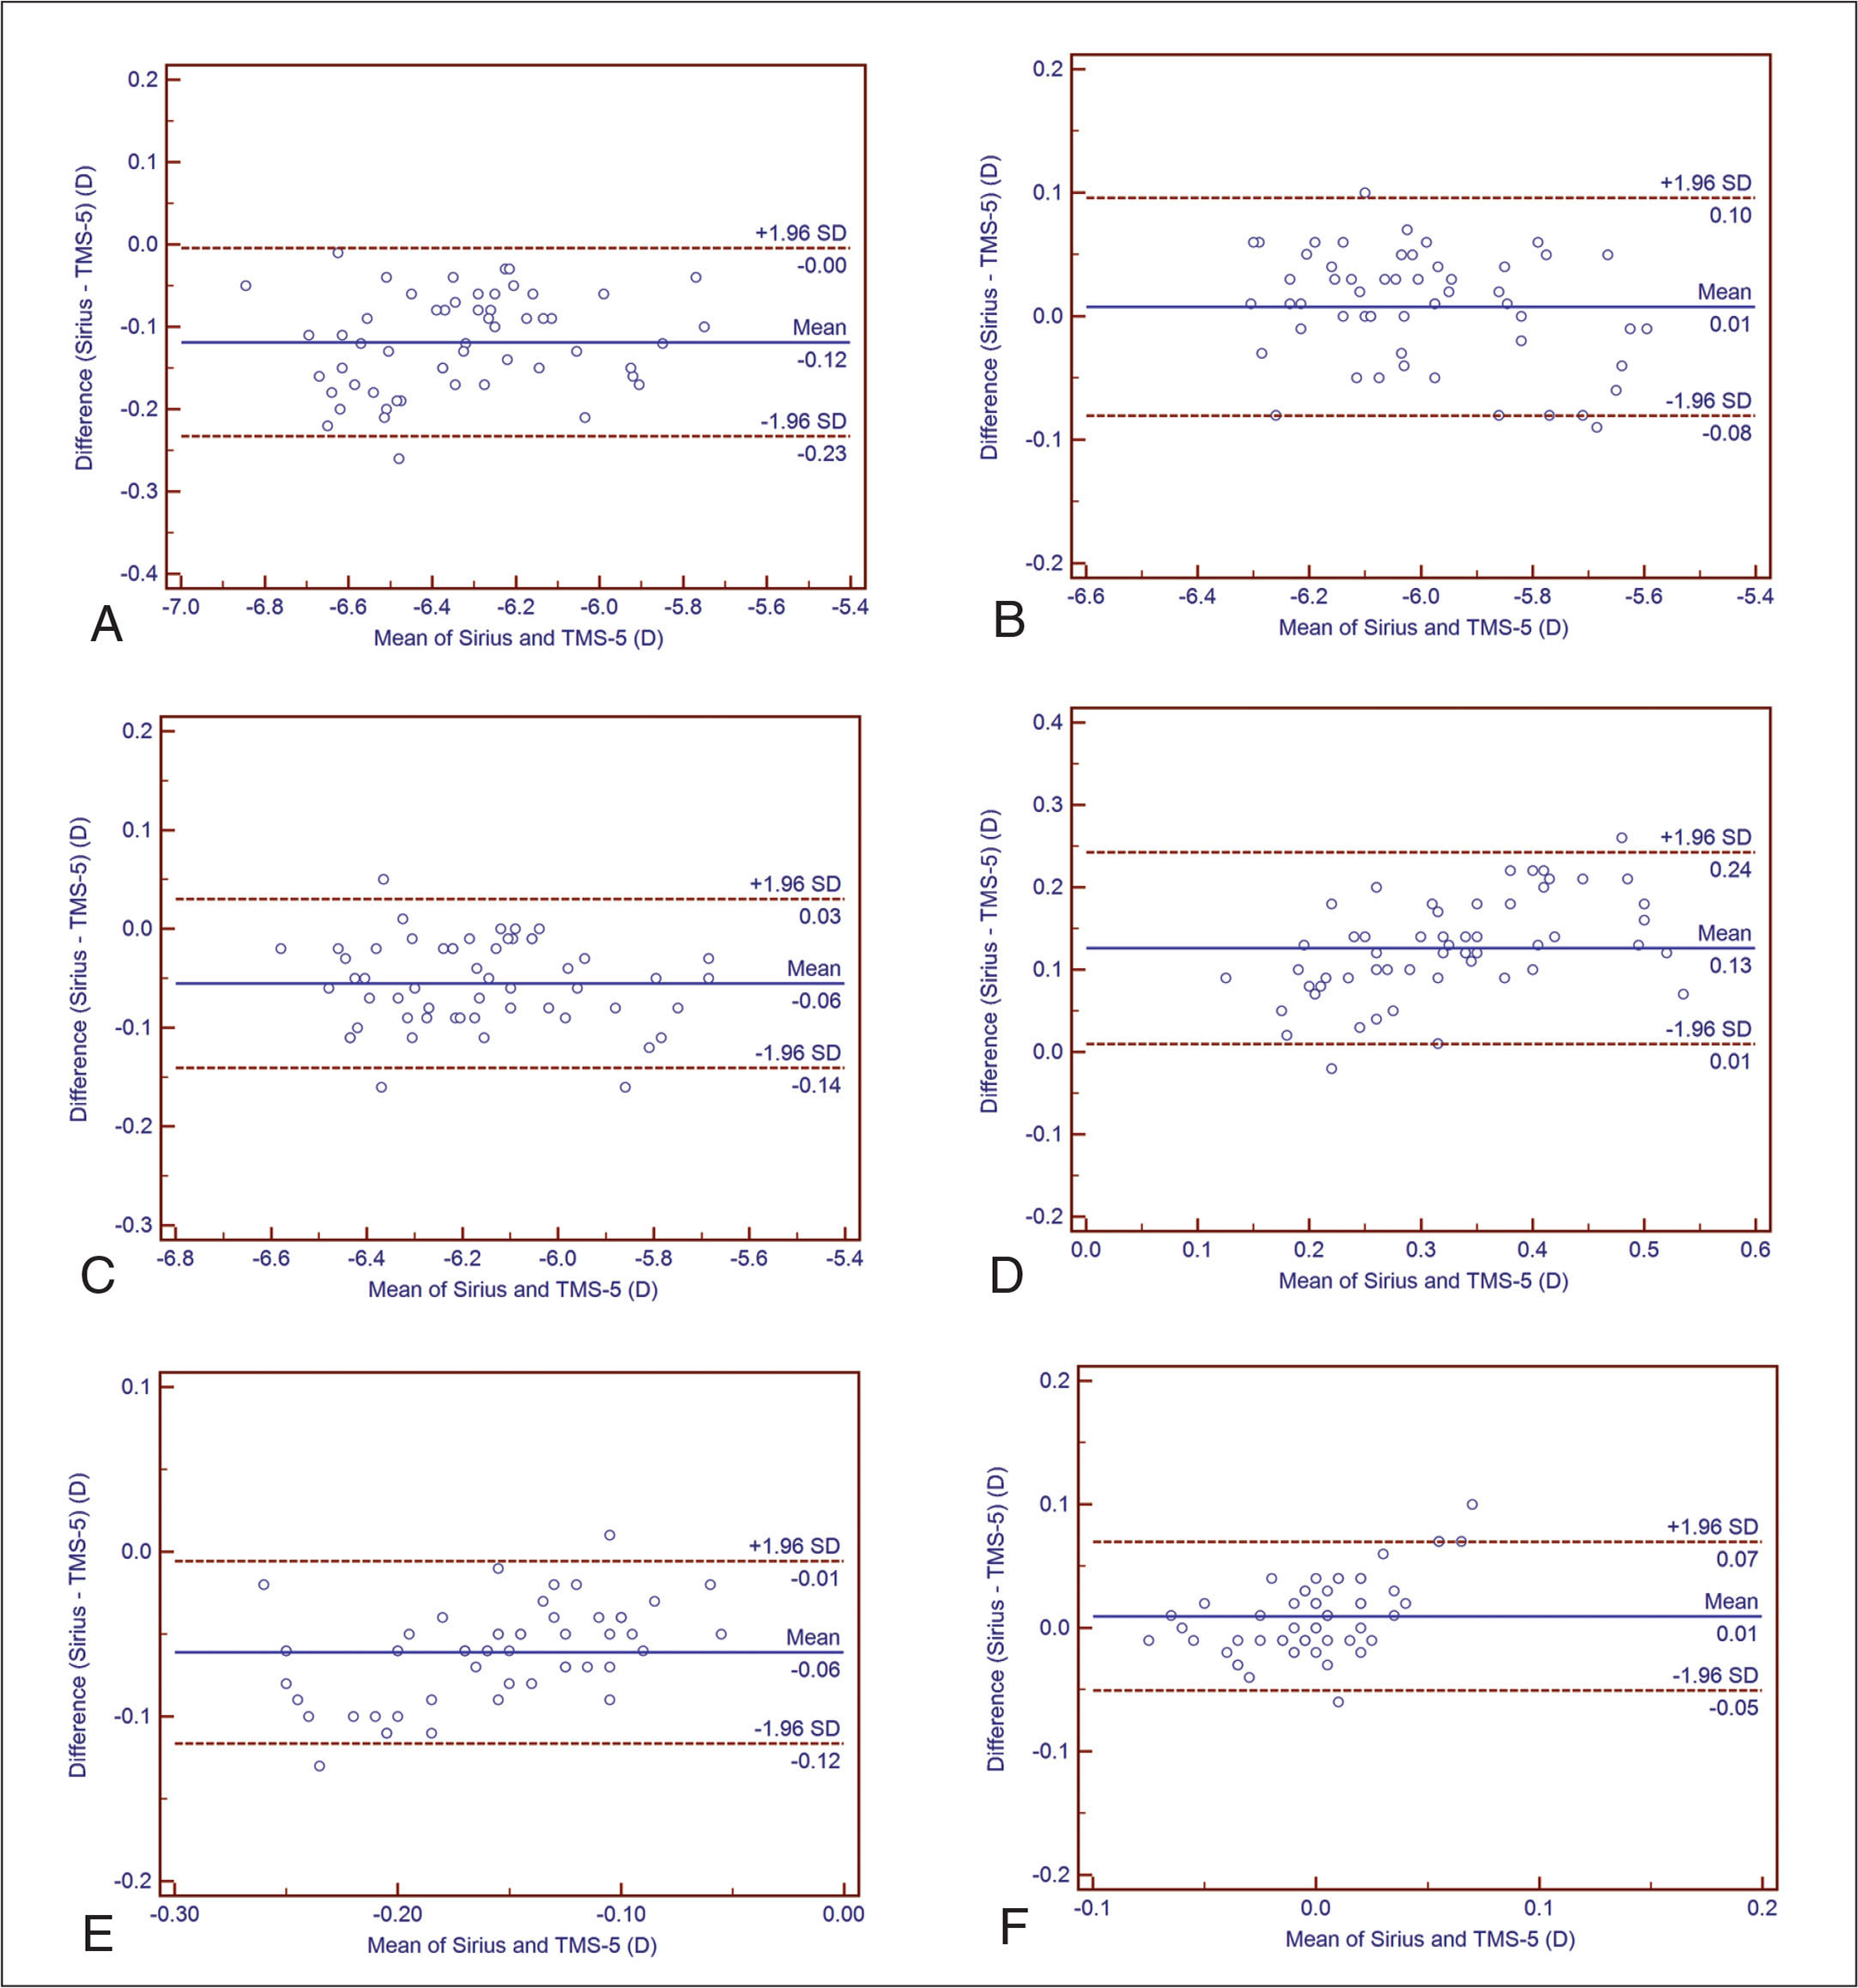 Bland–Altman plots show agreement between the Sirius (Costruzione Strumenti Oftalmici, Florence, Italy) and the TMS-5 (Tomey, Nagoya, Japan) Scheimpflug-Placido analyzers for measurement of the posterior corneal dioptric power for (A) flattest meridian, (B) steepest meridian, (C) mean, (D) astigmatism vector J0, (E) astigmatism, and (F) astigmatism vector J45. The solid line indicates the mean difference (bias), and the dotted lines indicate the 95% limits of agreement. D = diopters